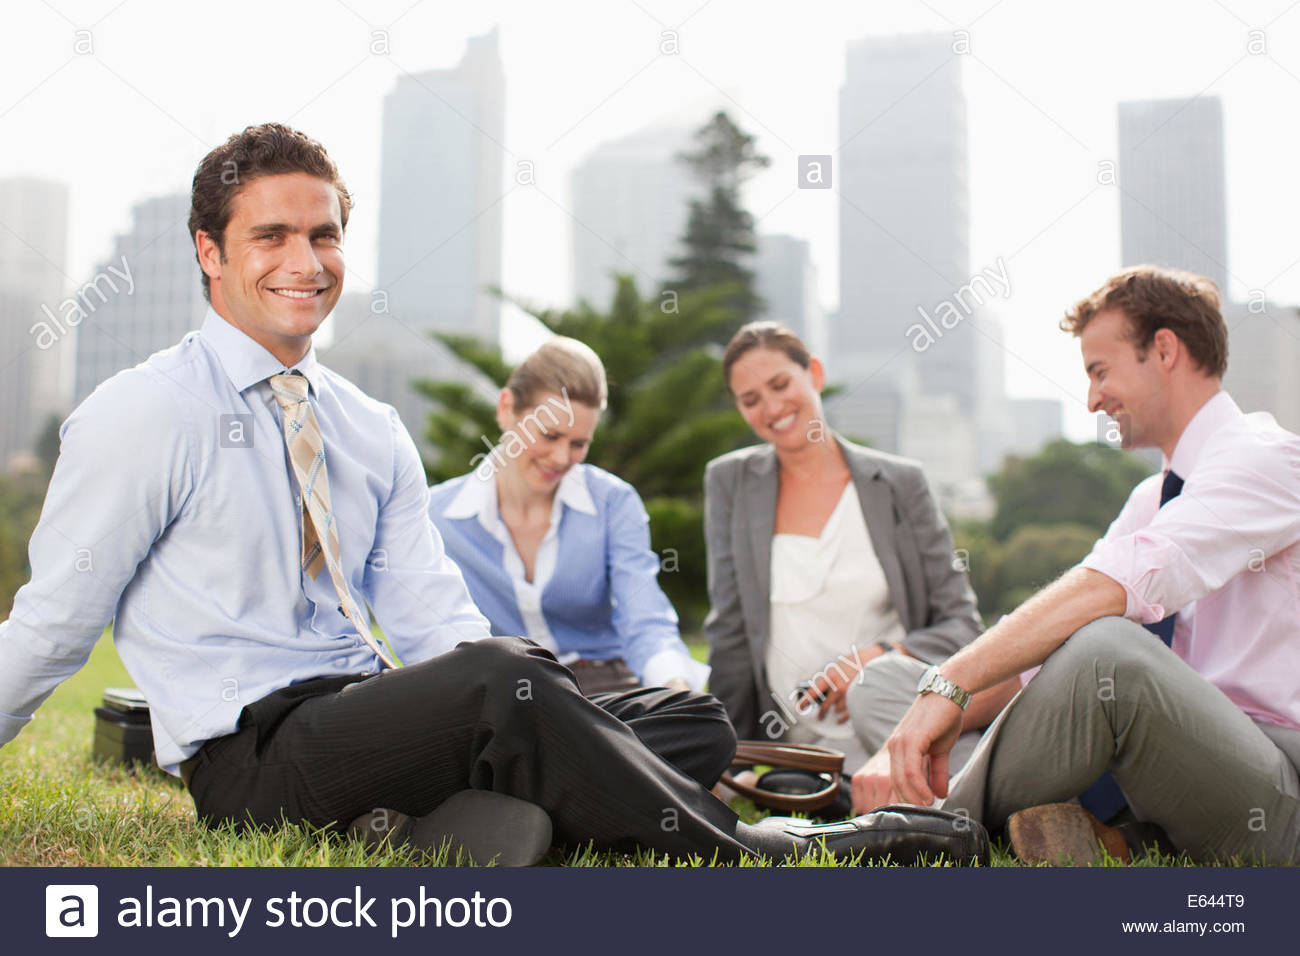 Business people working together in park - Stock Image